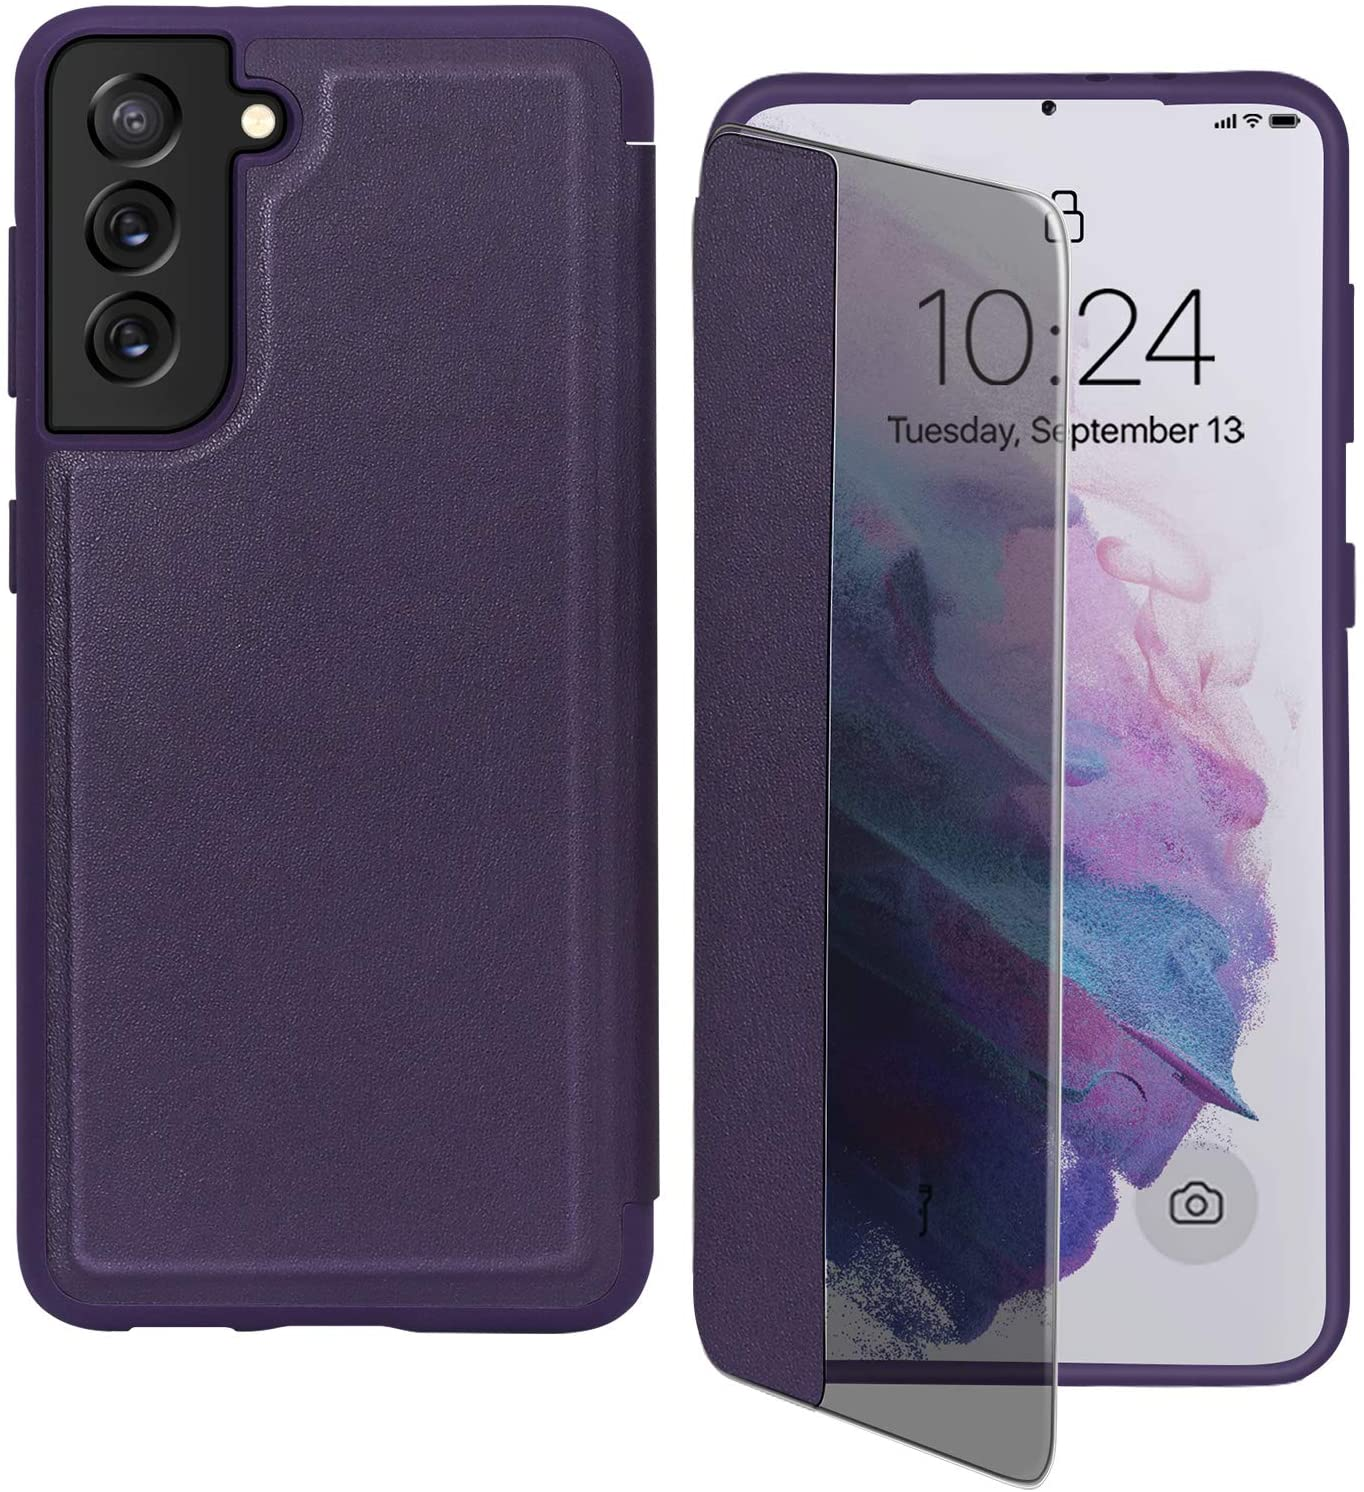 """FYY Phone Case for Samsung Galaxy S21 5G 6.2"""", Magnetic Slim Flip Case Drop Protection Shockproof Protective Cover with Window View Function for Samsung Galaxy S21 6.2 inch Purple"""